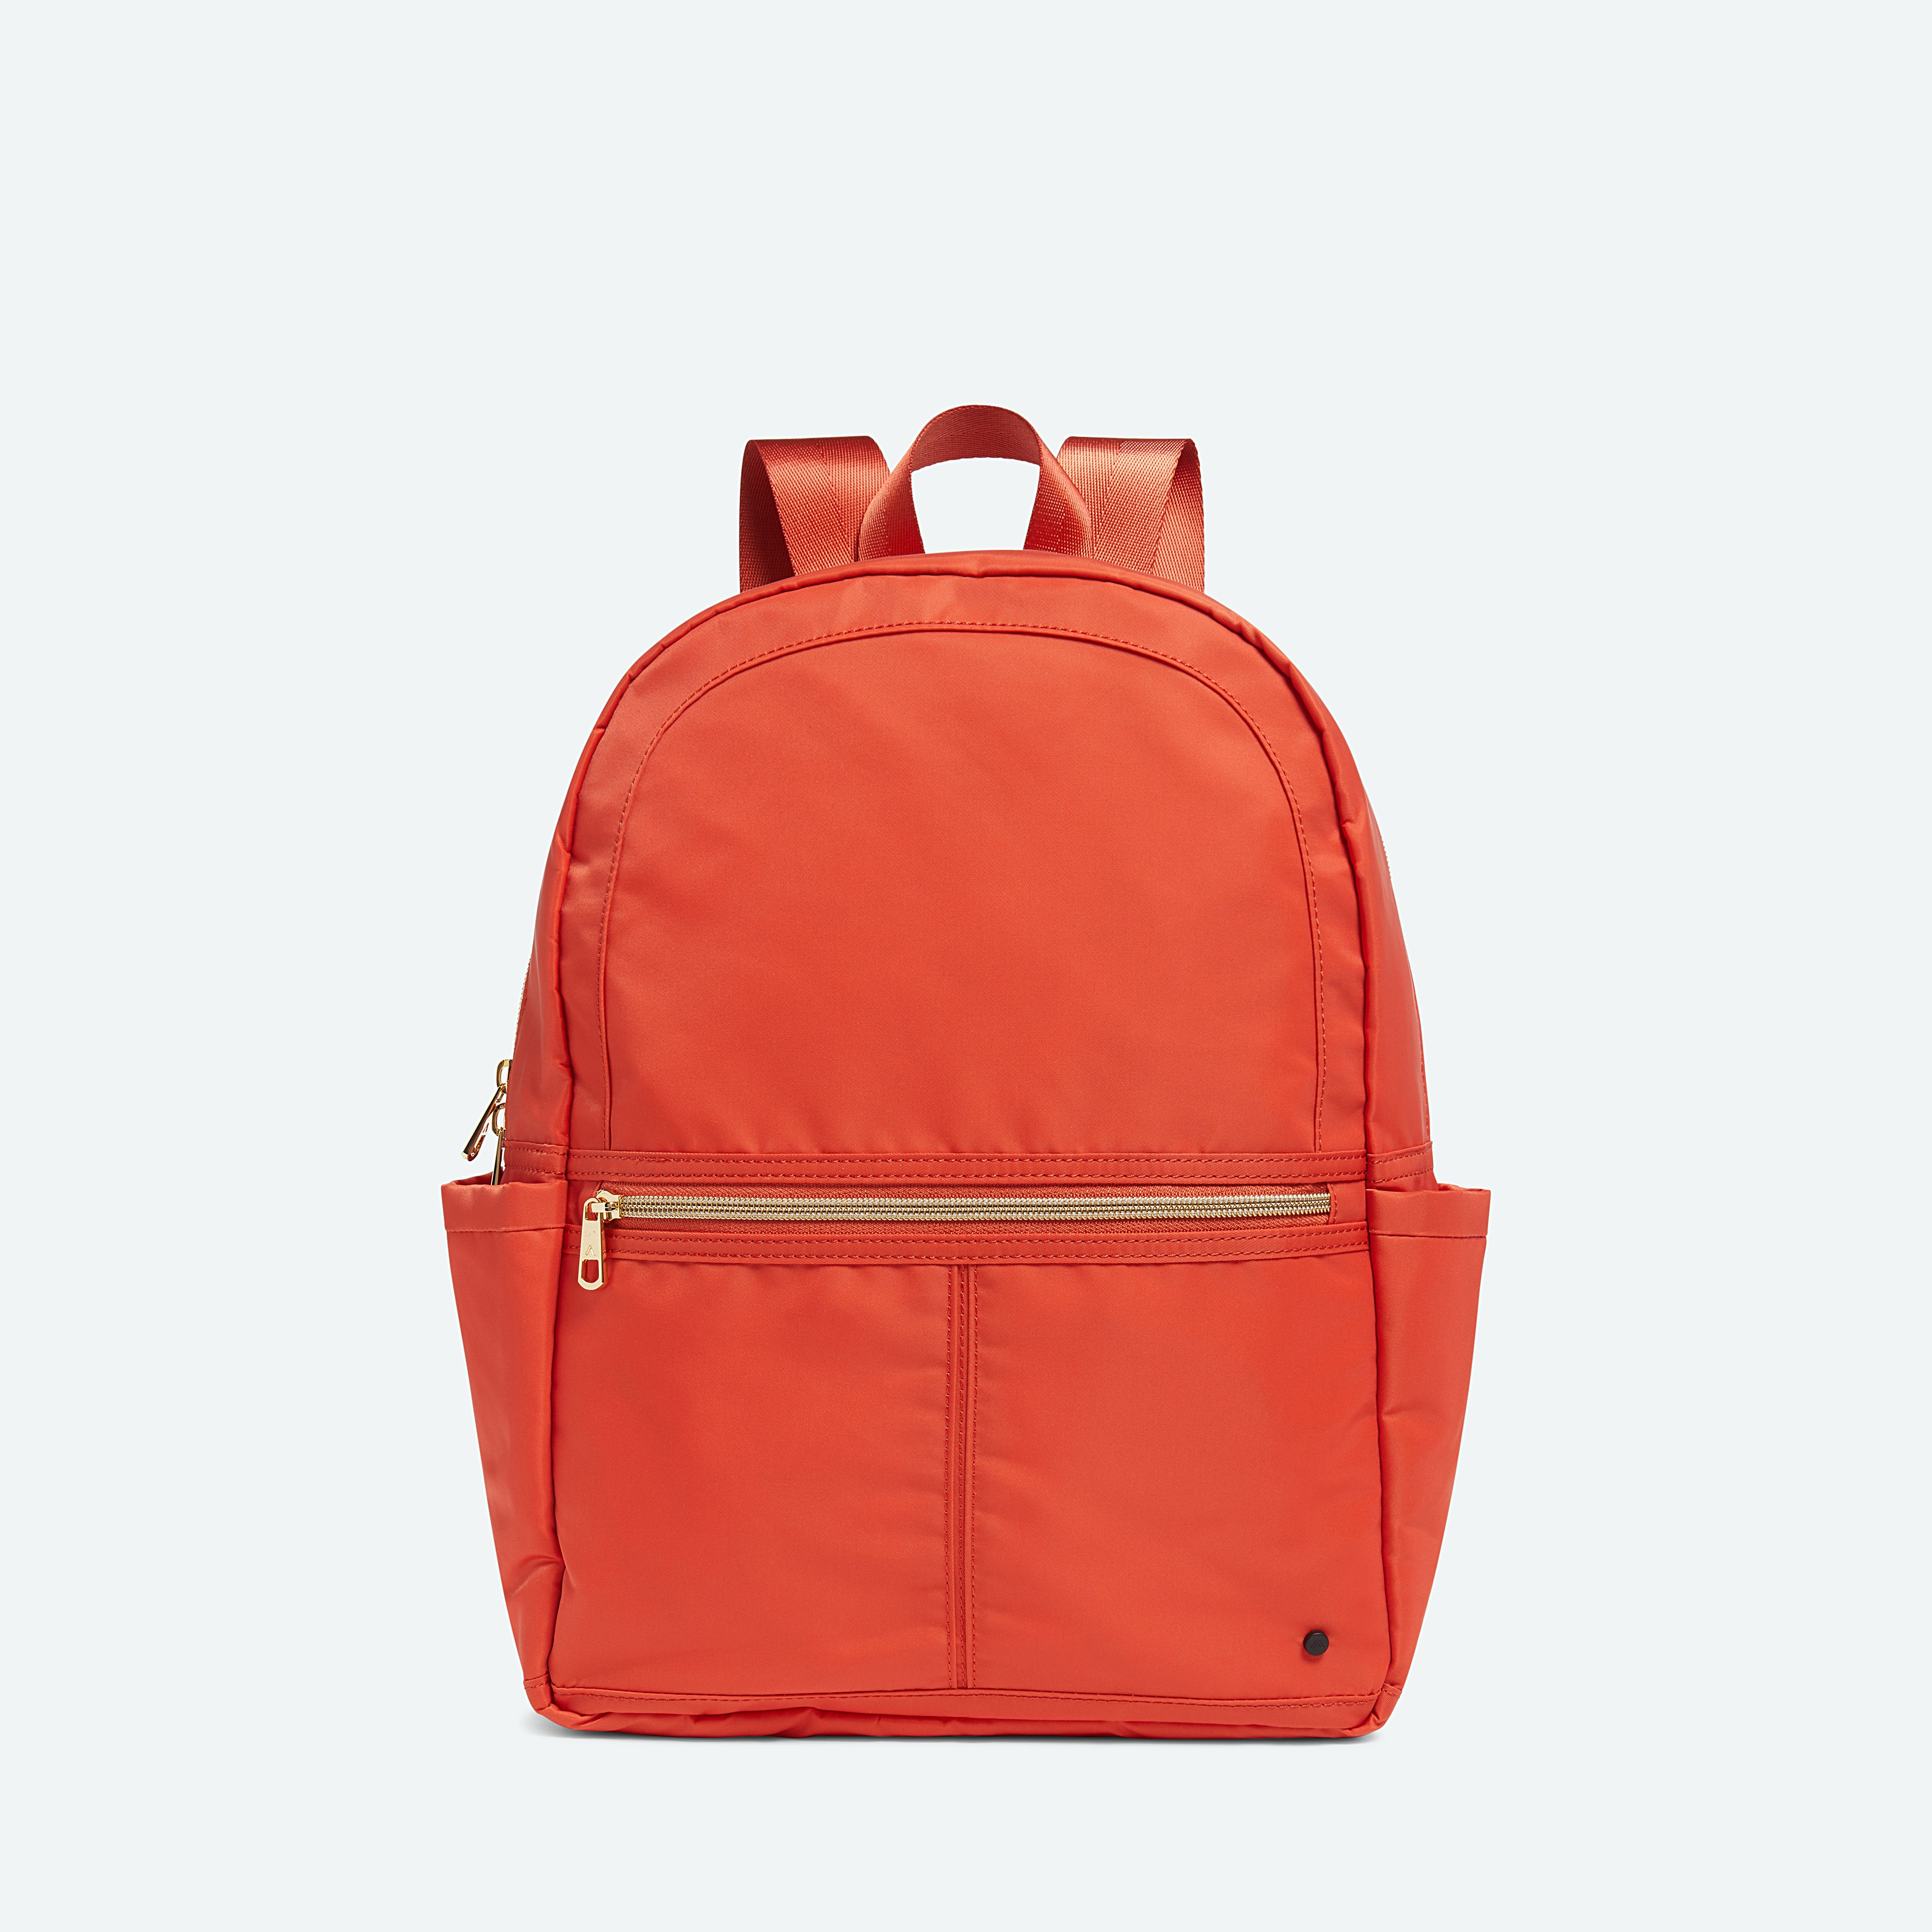 STATE Bags - Backpacks, Totes and Bags for Women, Men & Kids